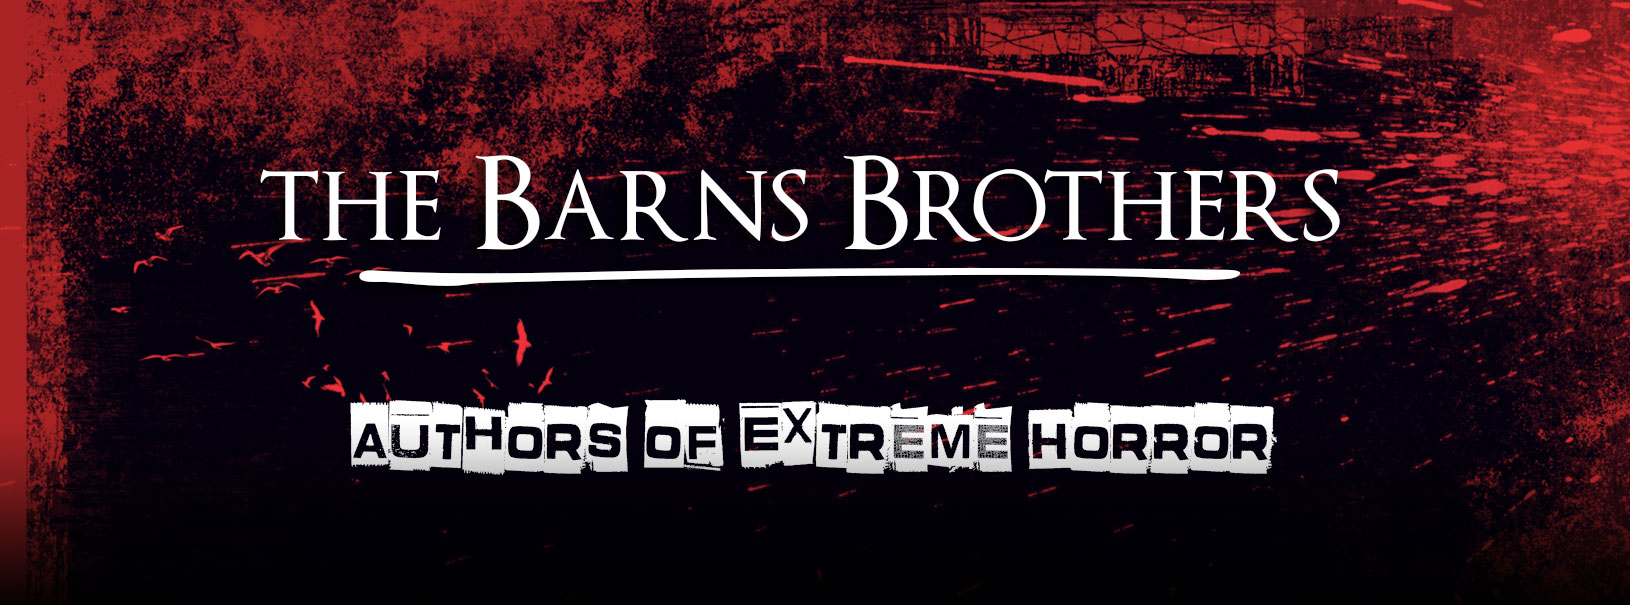 The Barns Brothers